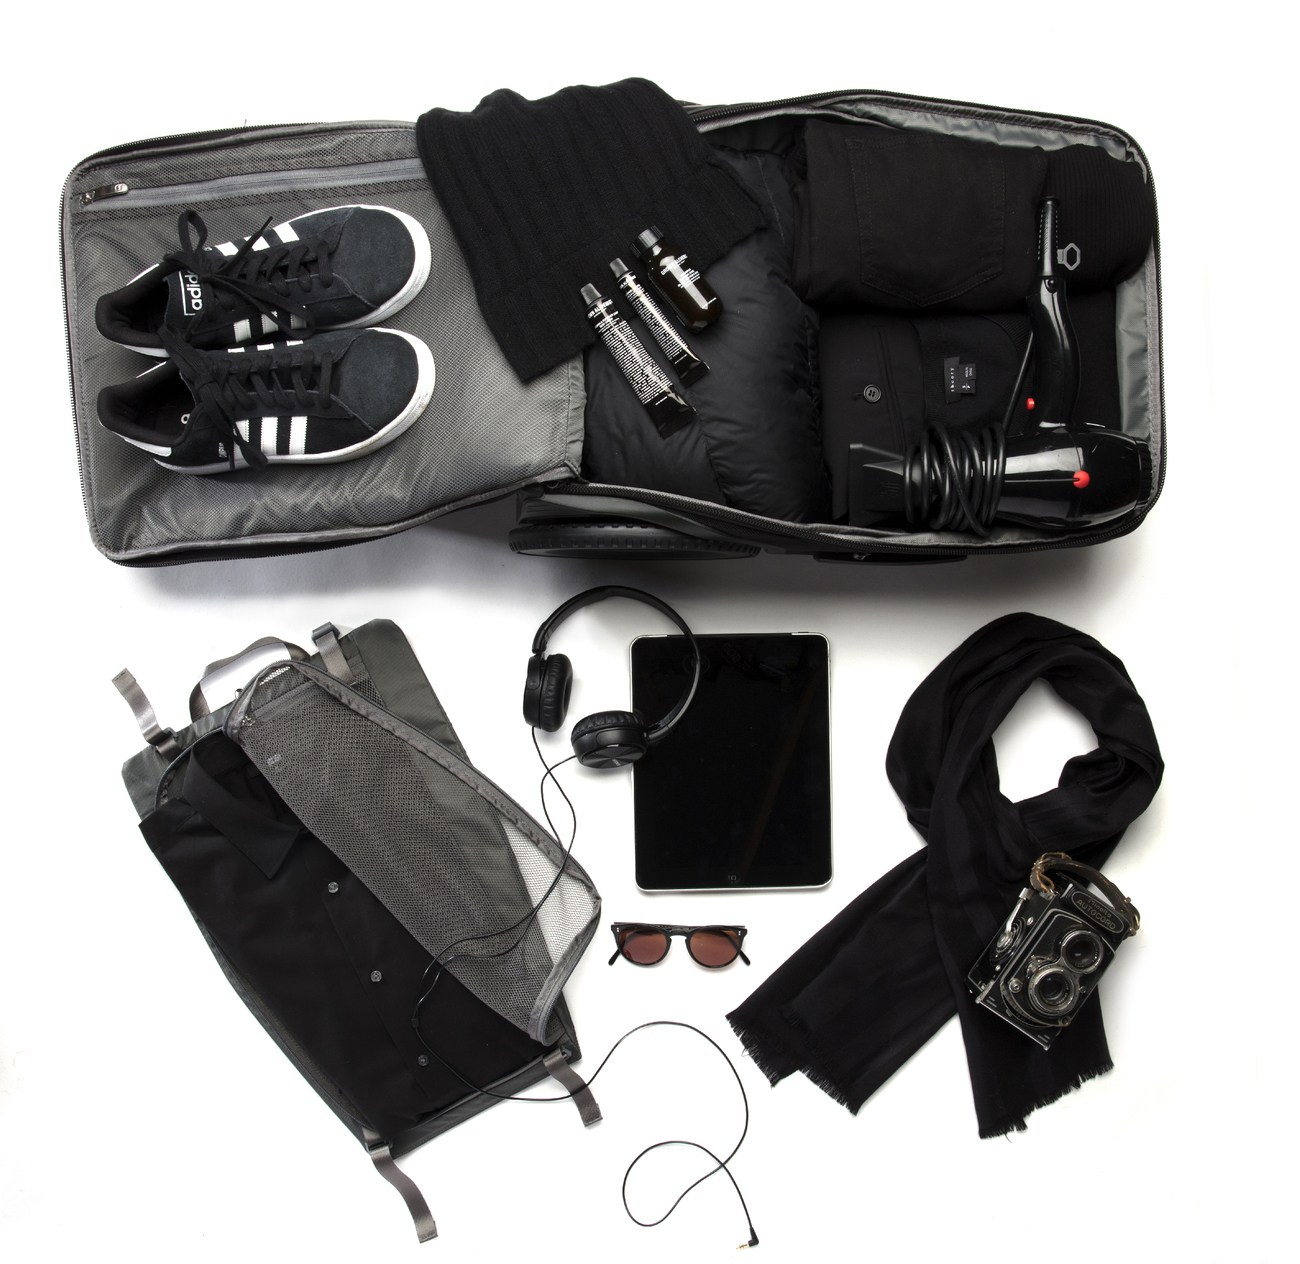 G-RO – Revolutionary Carry-On Luggage